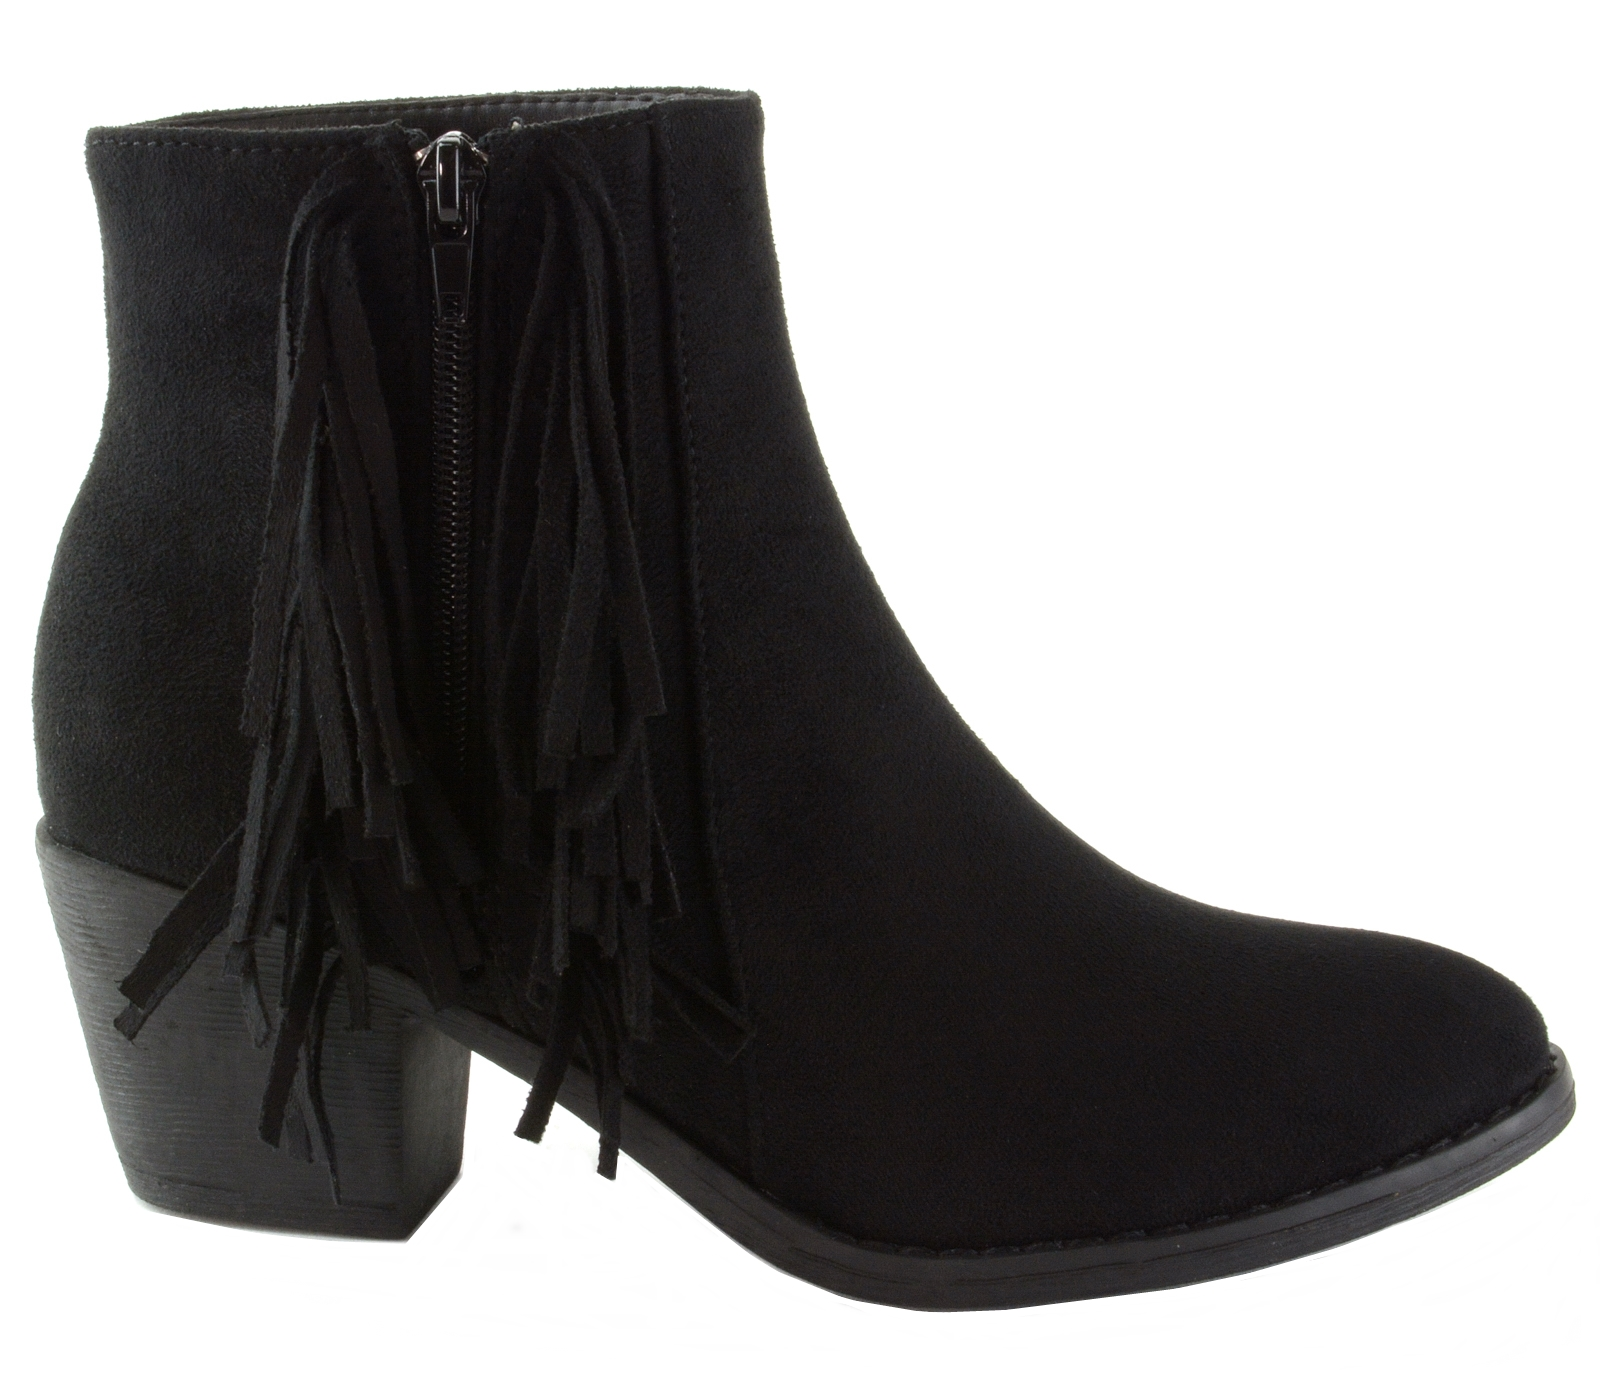 Alpine-Swiss-Arosa-Womens-Ankle-Boots-Fringe-Shoes-Block-High-Heel-Micro-Suede thumbnail 14